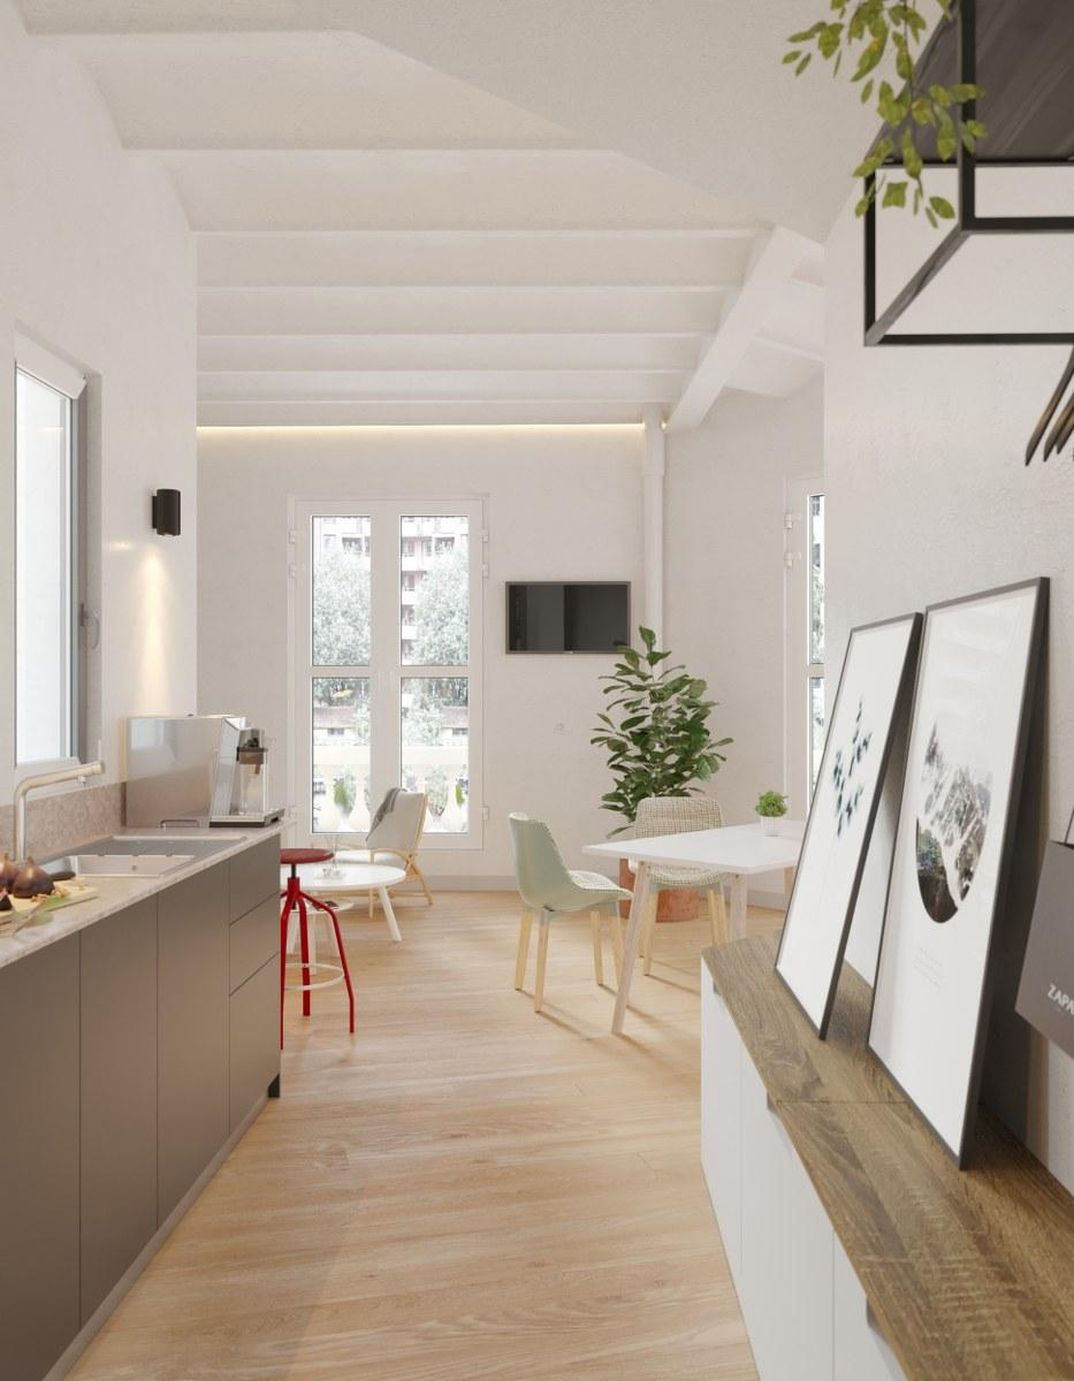 T111 APARTMENT, BARCELONA, SPAIN